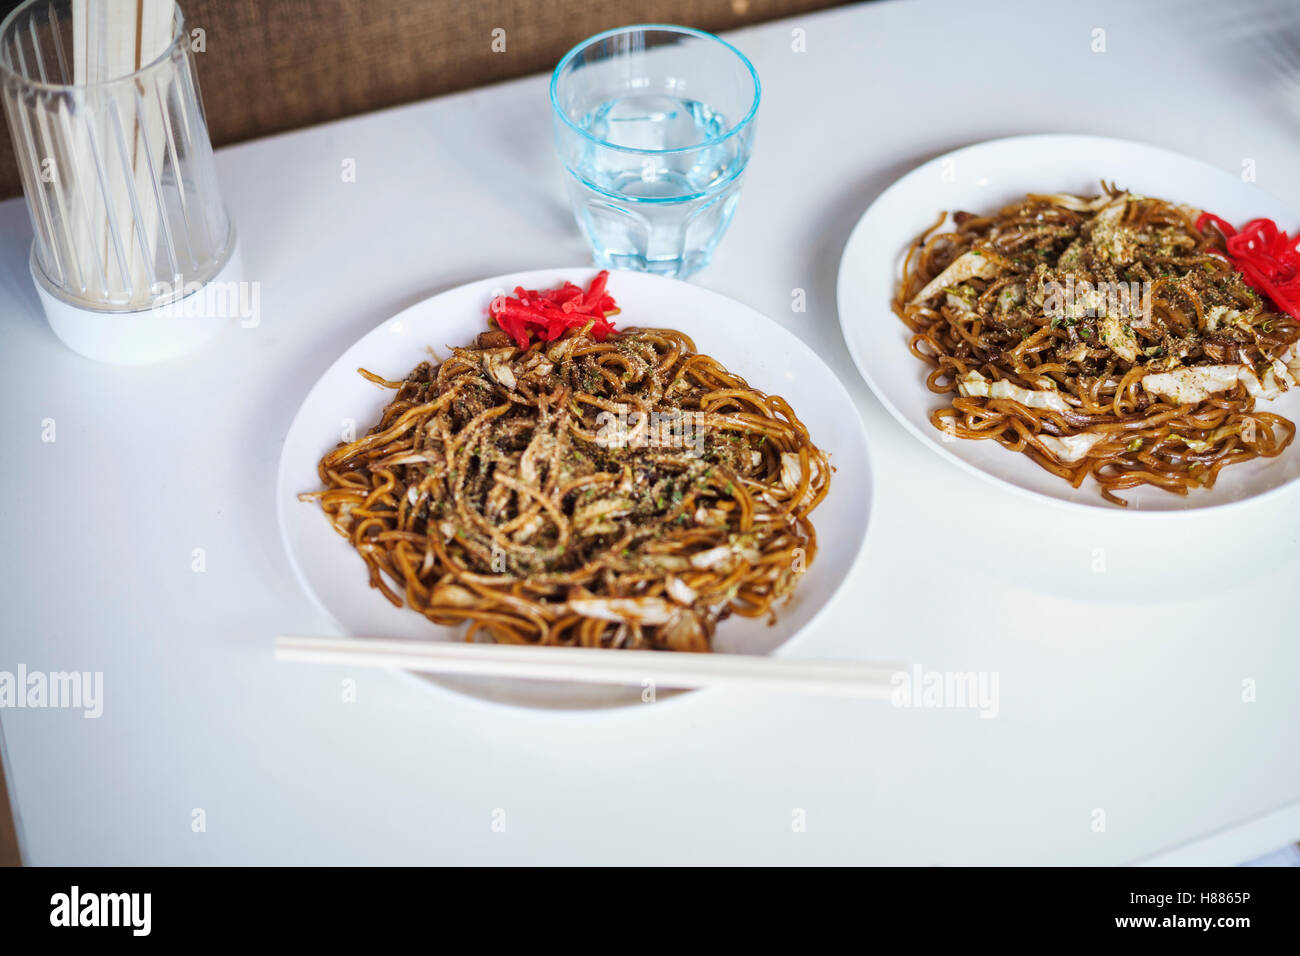 Close up of two plates of Soba noodles, fast food. Stock Photo